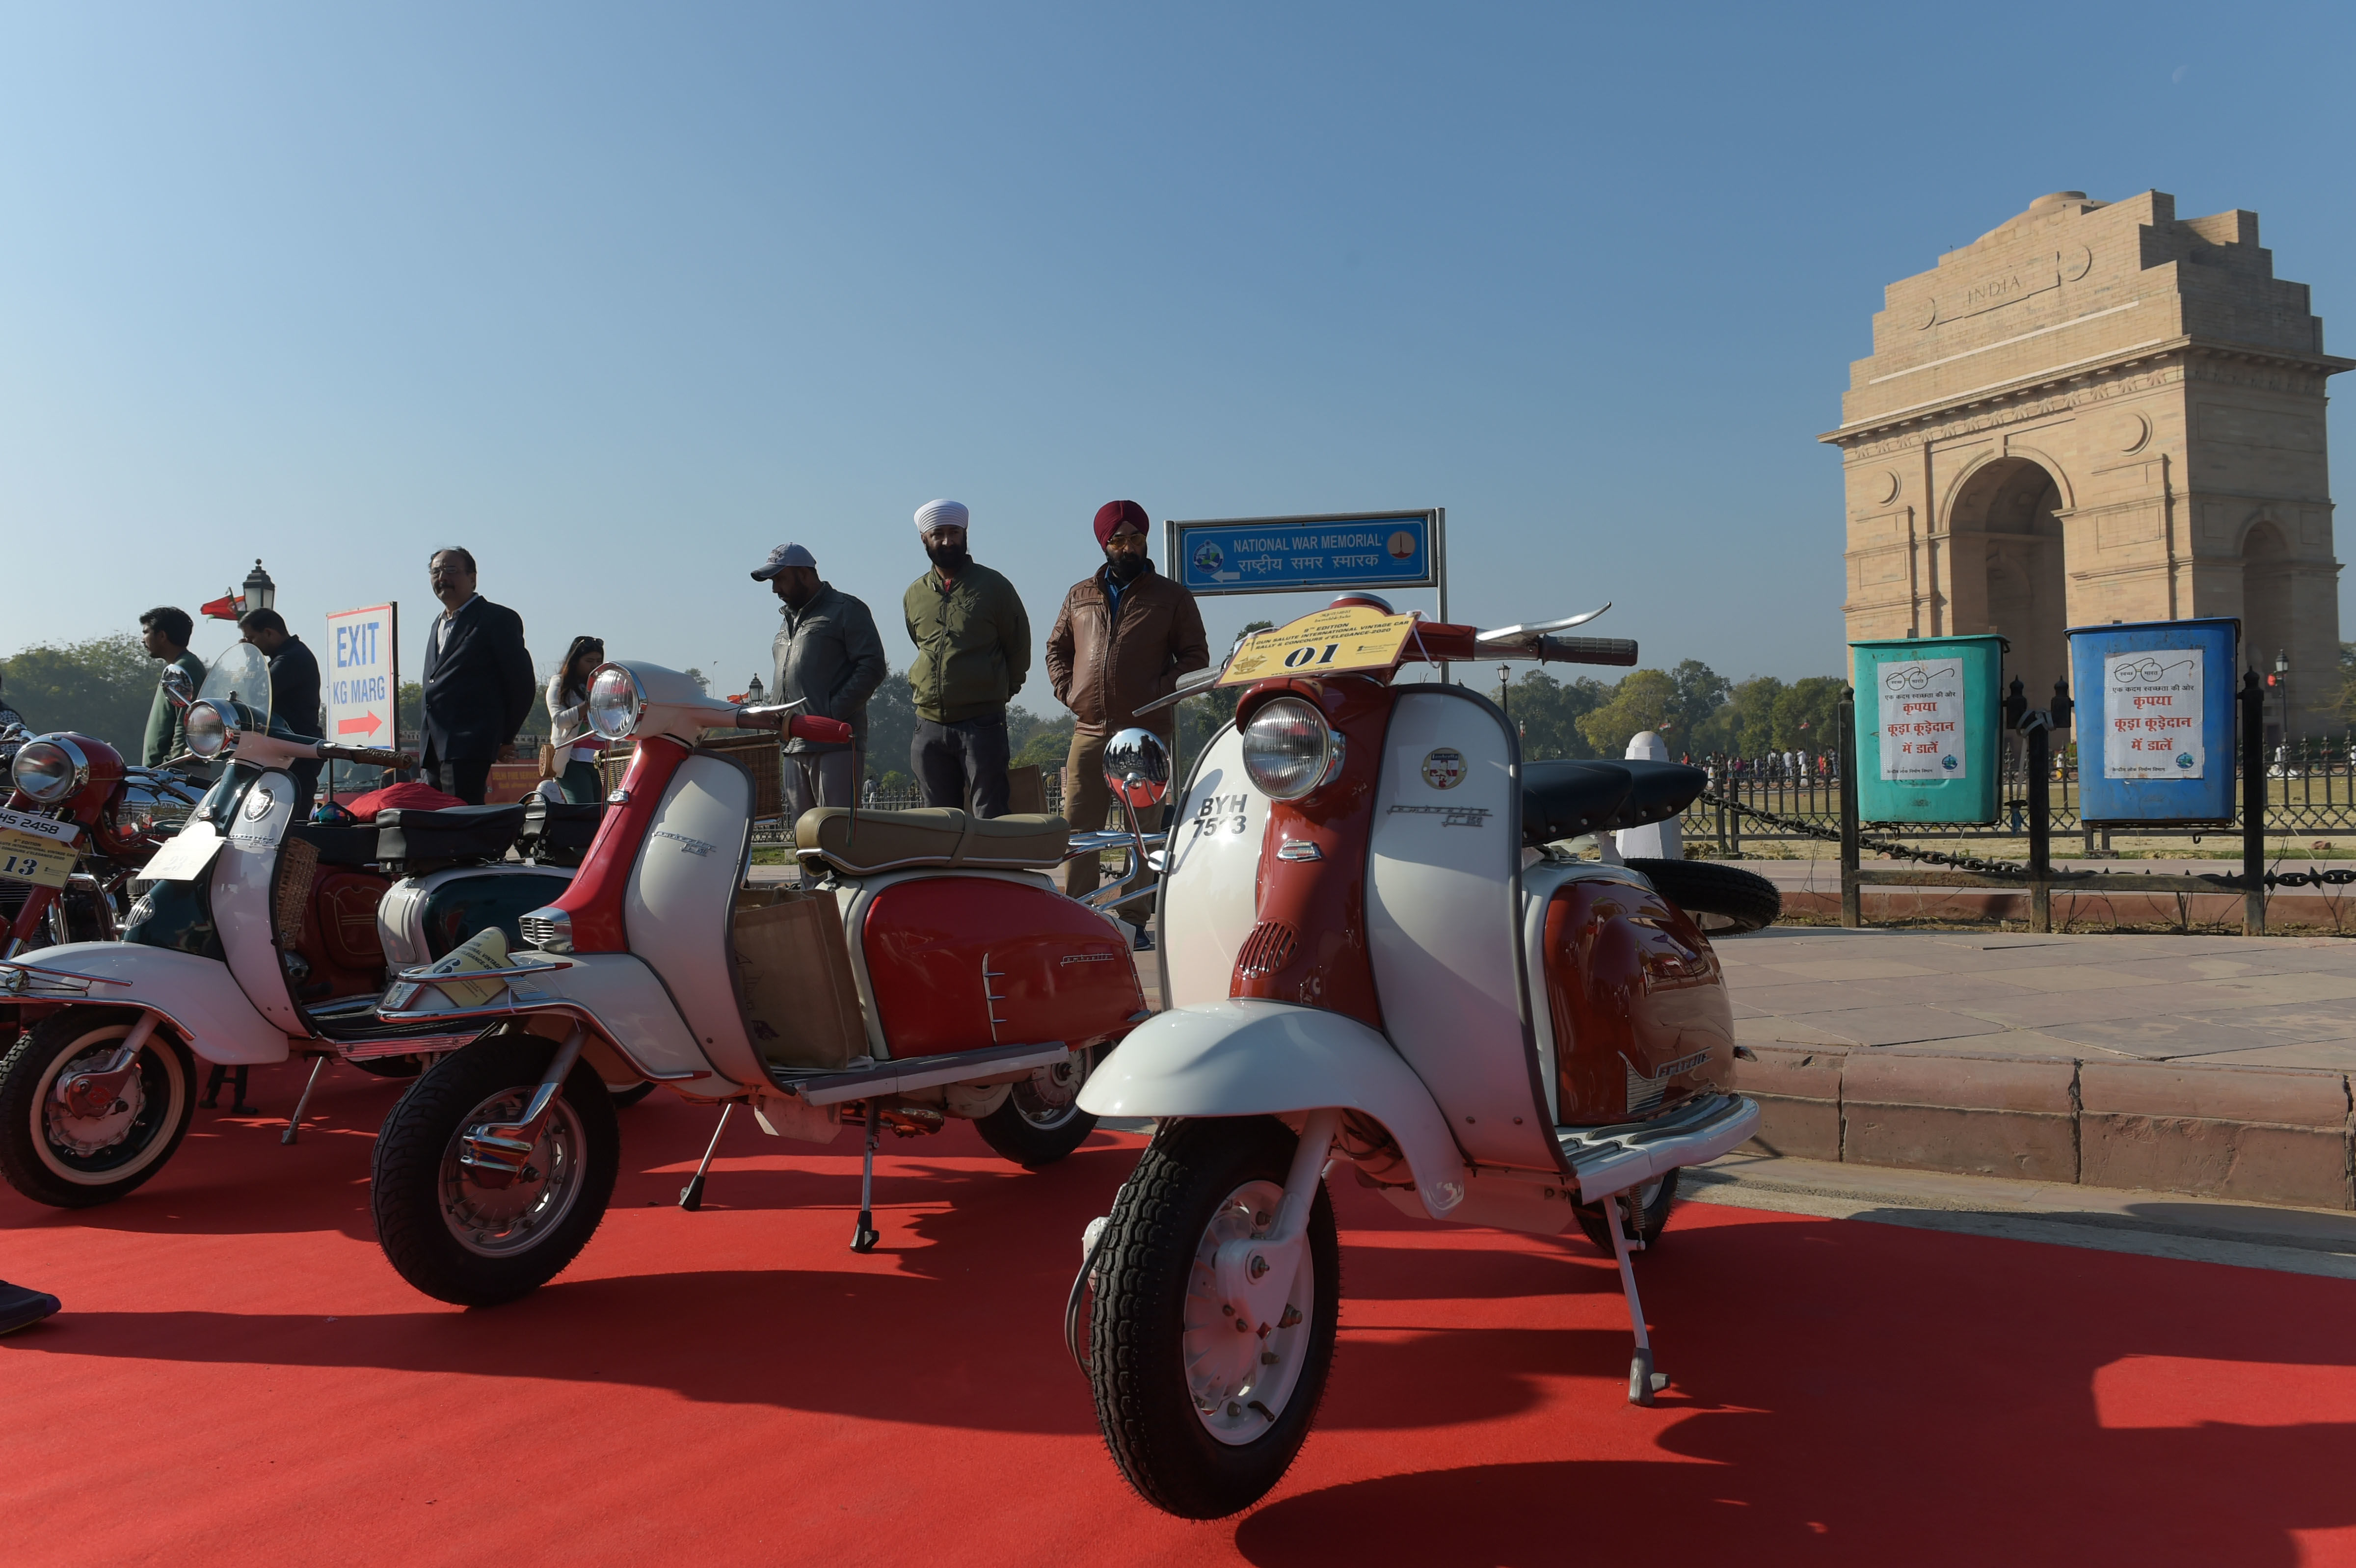 New Delhi: Vintage Lambretta scooters put on display during the 21 Gun Salute International Vintage Car Rally at India Gate, in New Delhi, Saturday, Feb 15, 2020. (PTI Photo/Vijay Verma) (PTI)